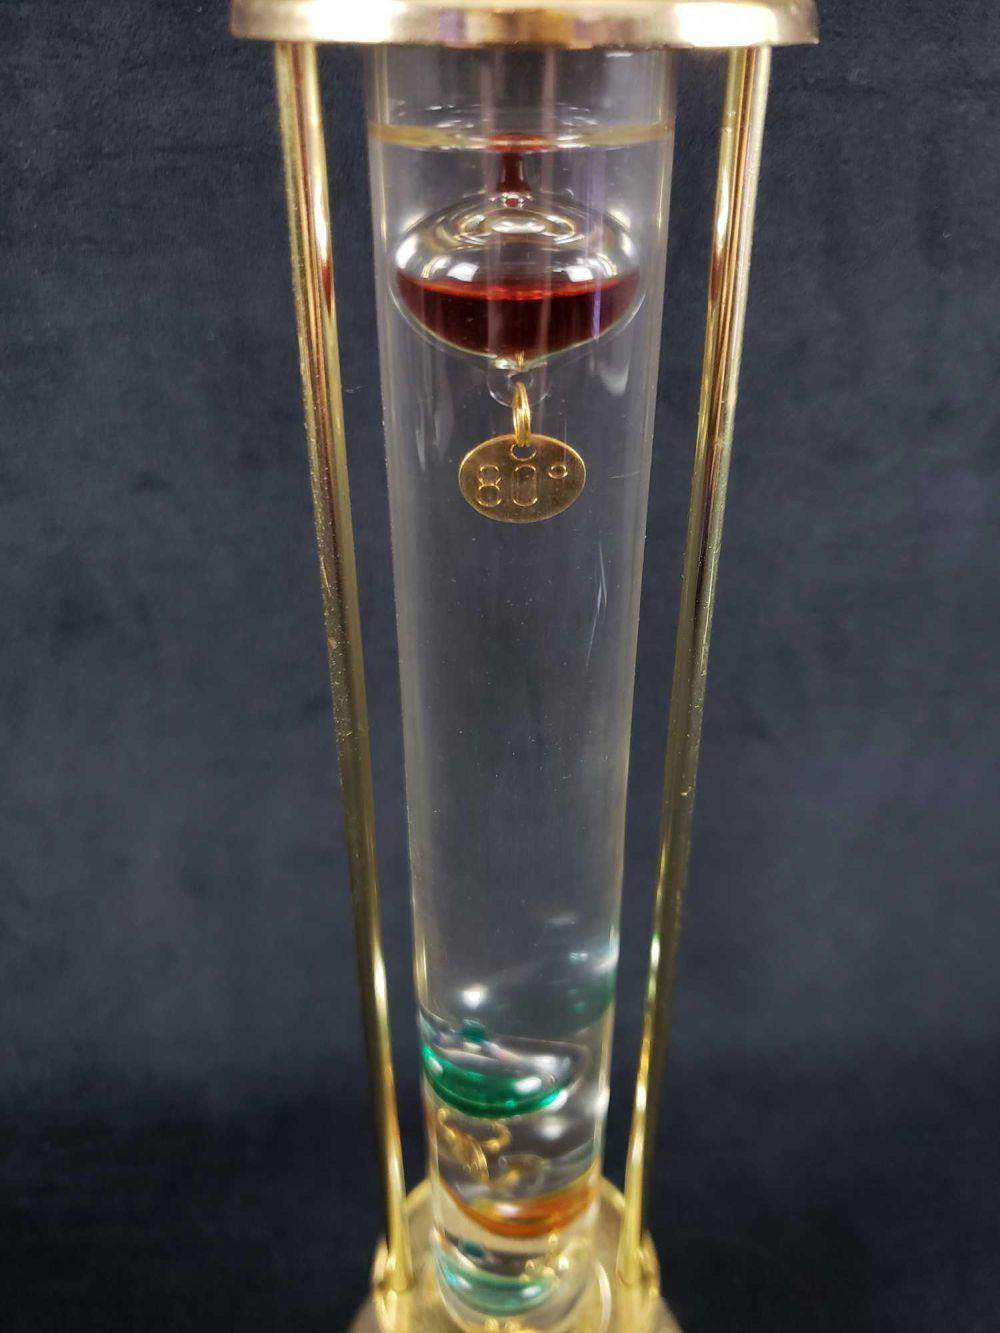 Lot 310: Vintage Glass and Brass Decorative Galileo Thermometer